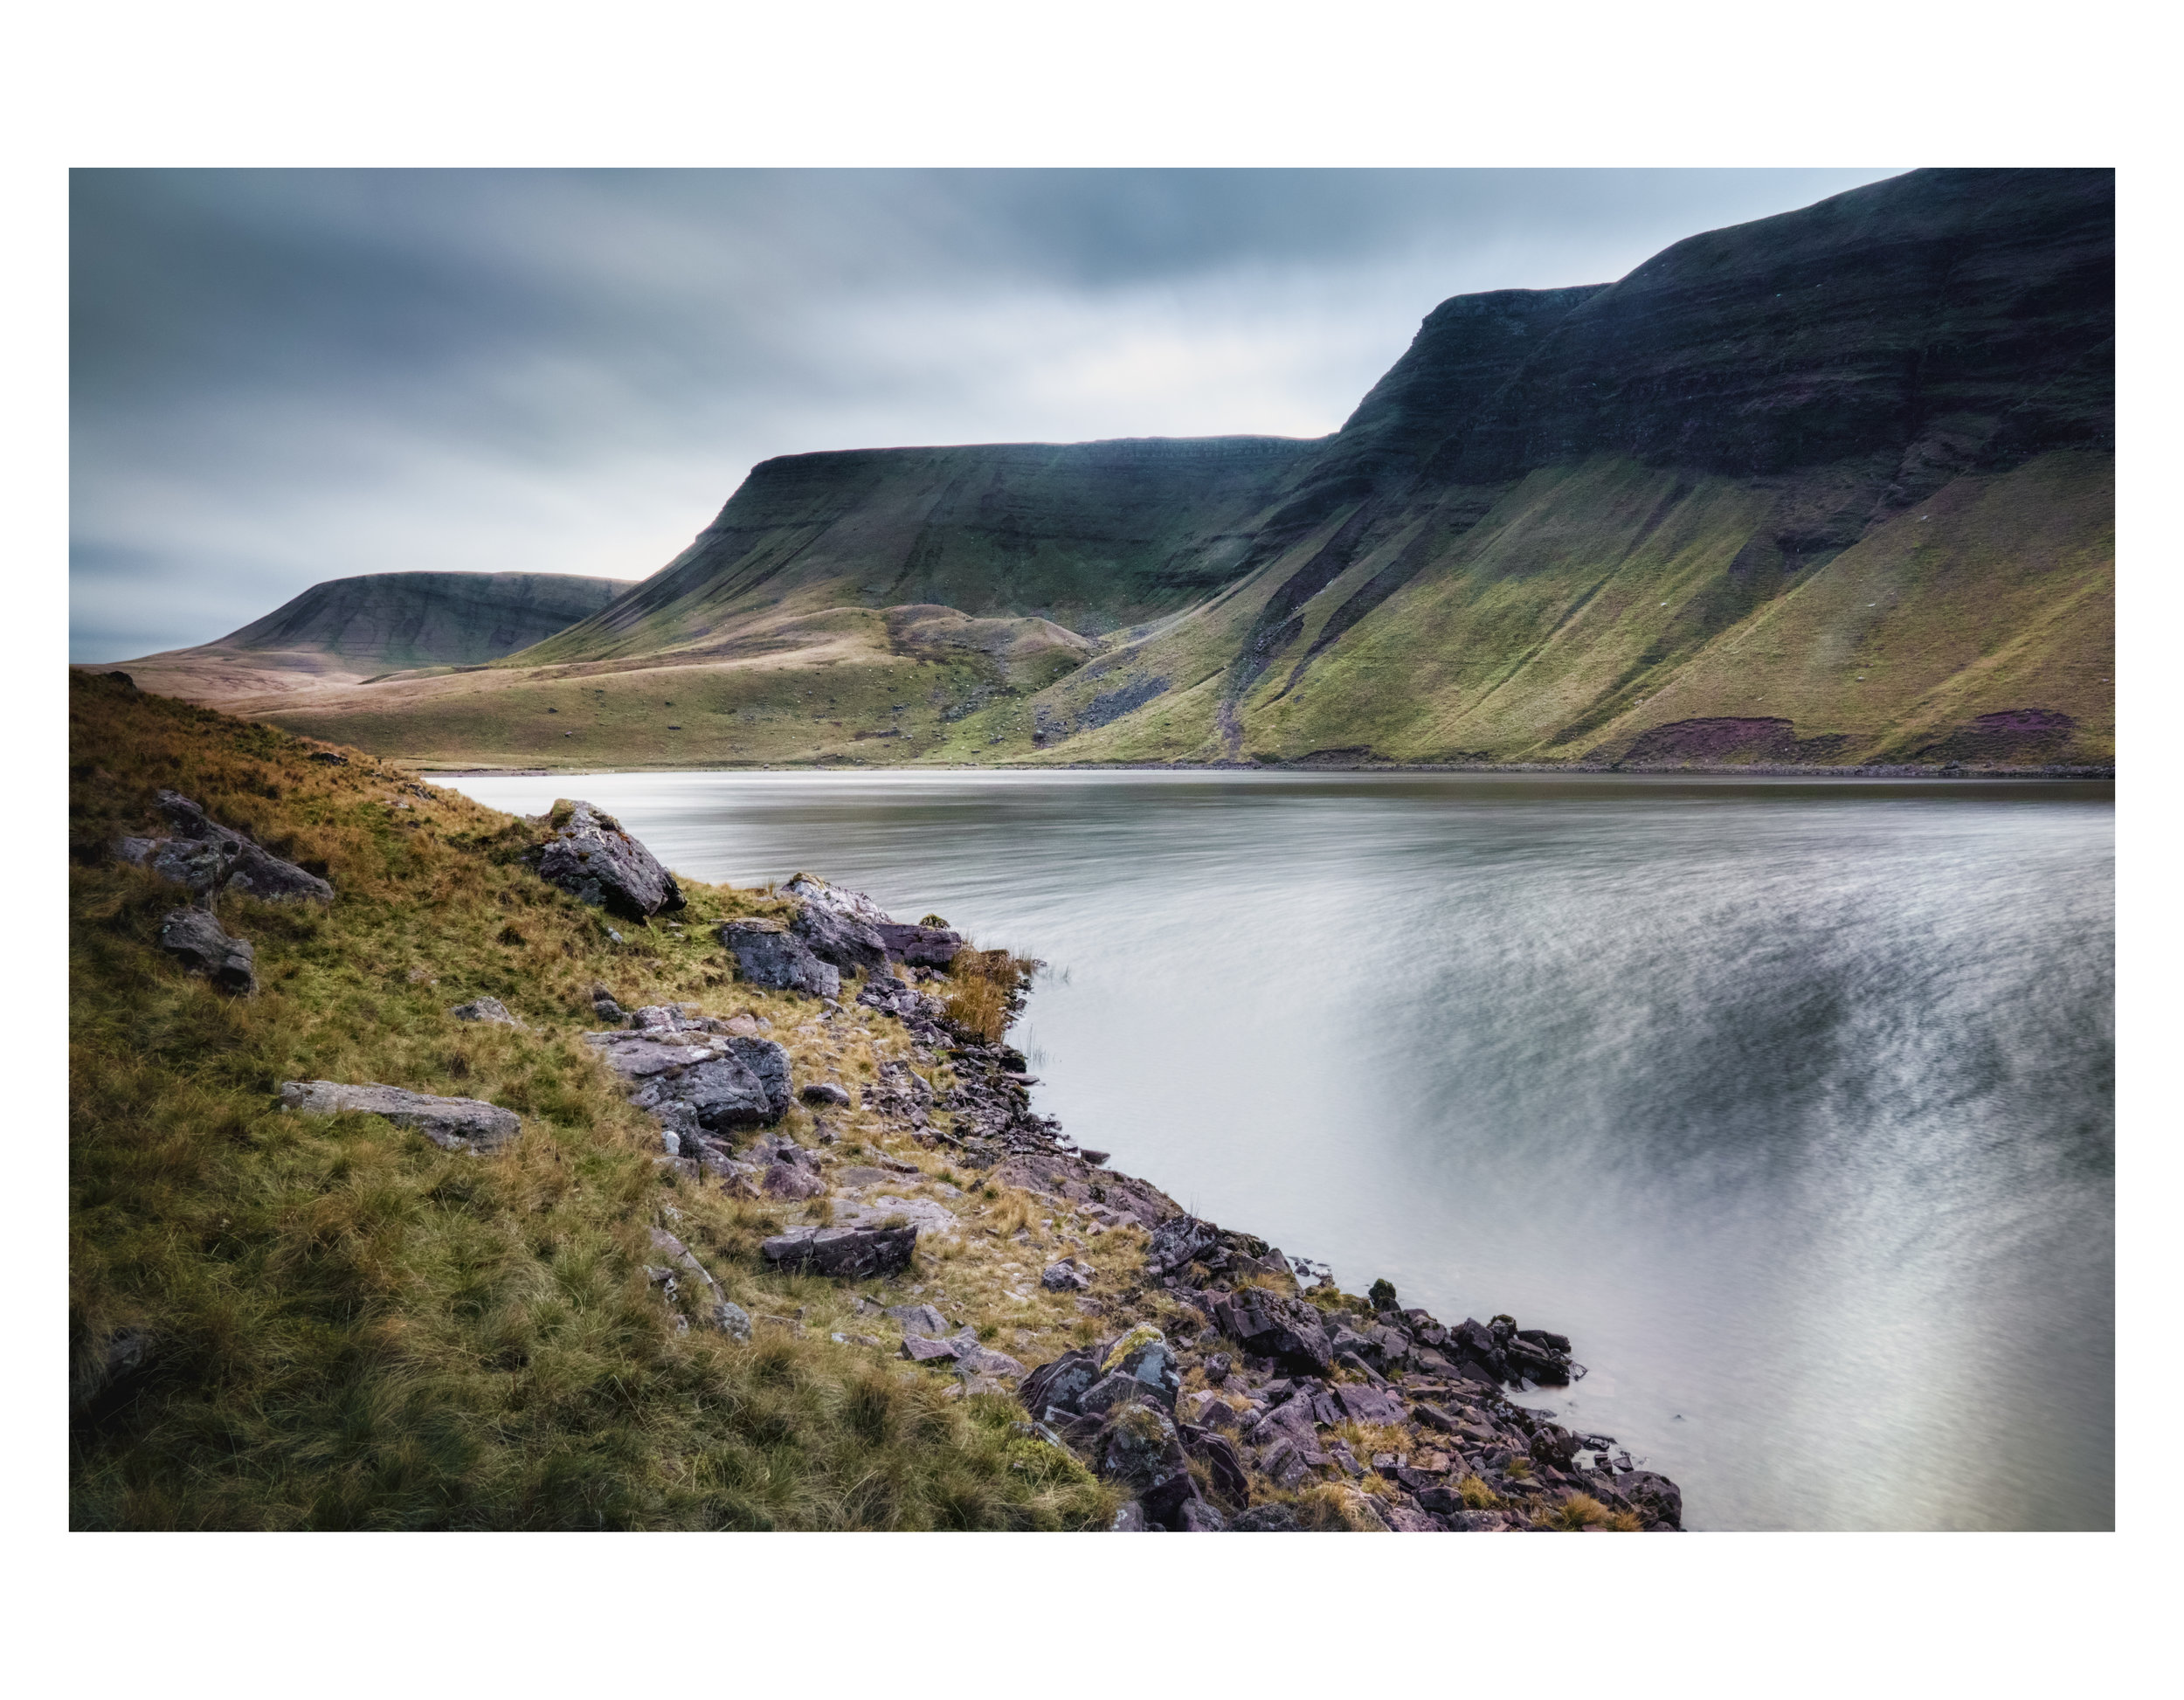 south_wales-brecon_beacons-fullmatte-08.jpg